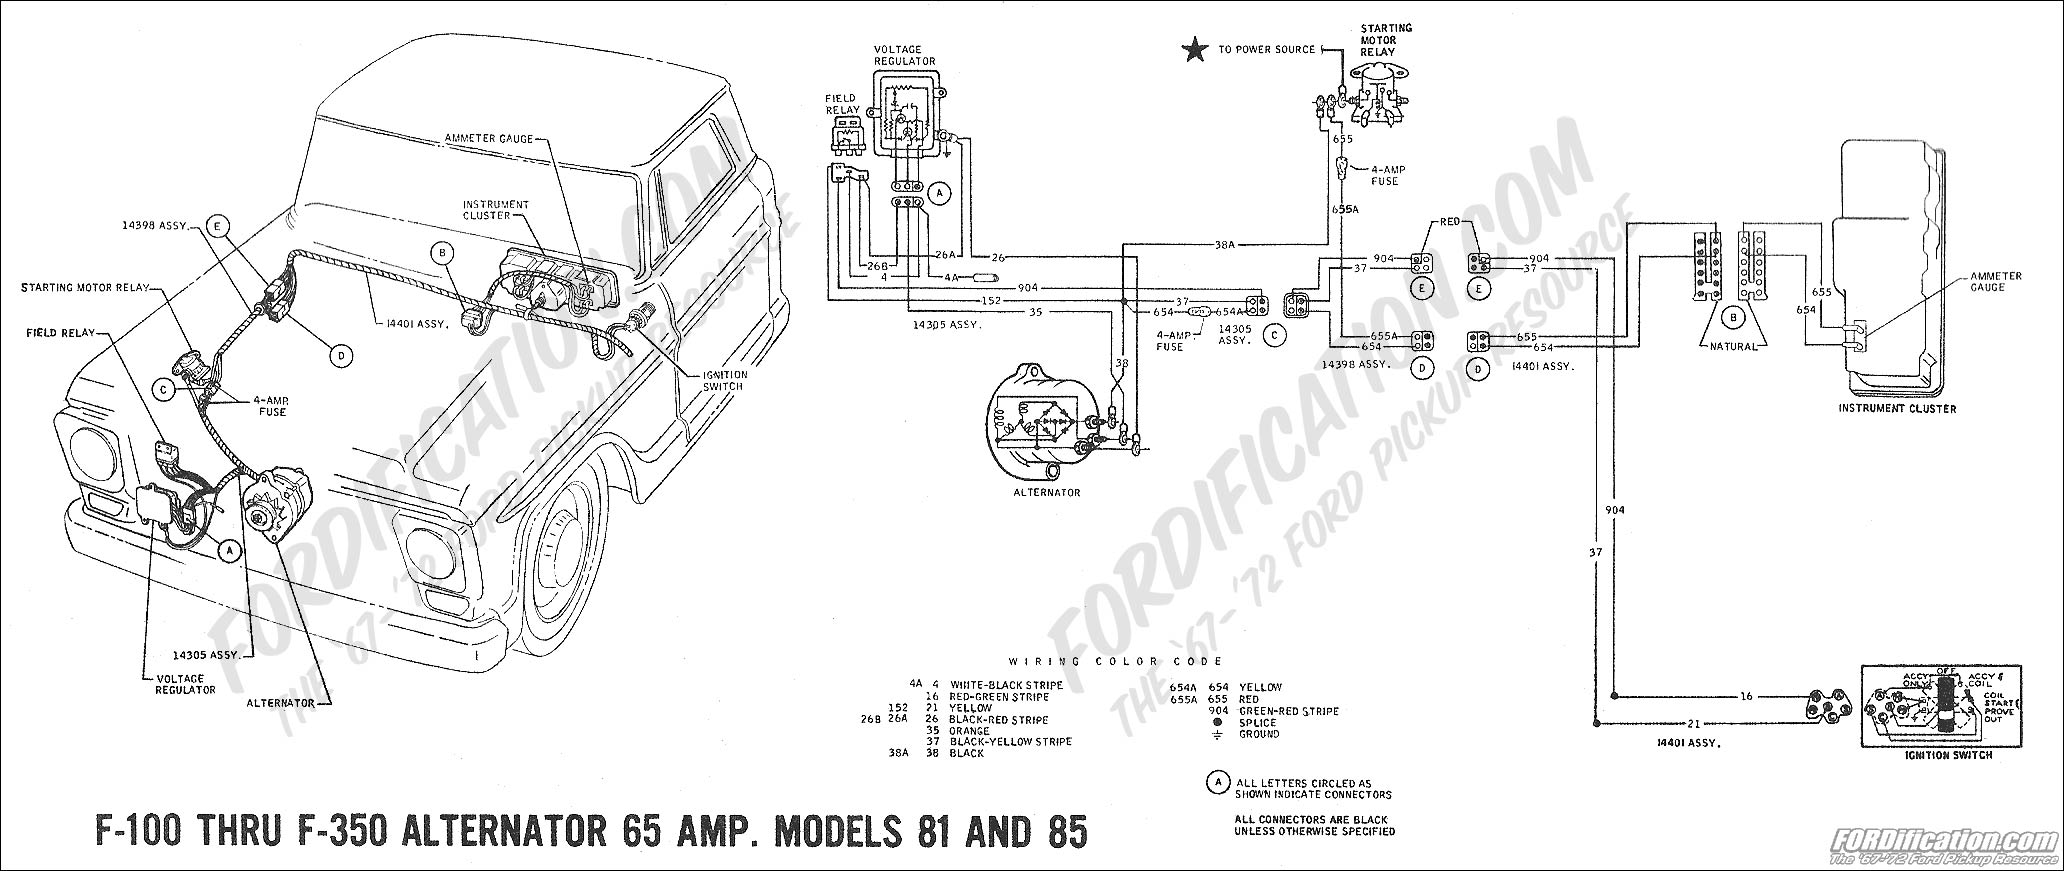 wiring_69charging03 1977 ford f100 alternator wiring diagram wiring diagram and Ford Super Duty Wiring Diagram at panicattacktreatment.co